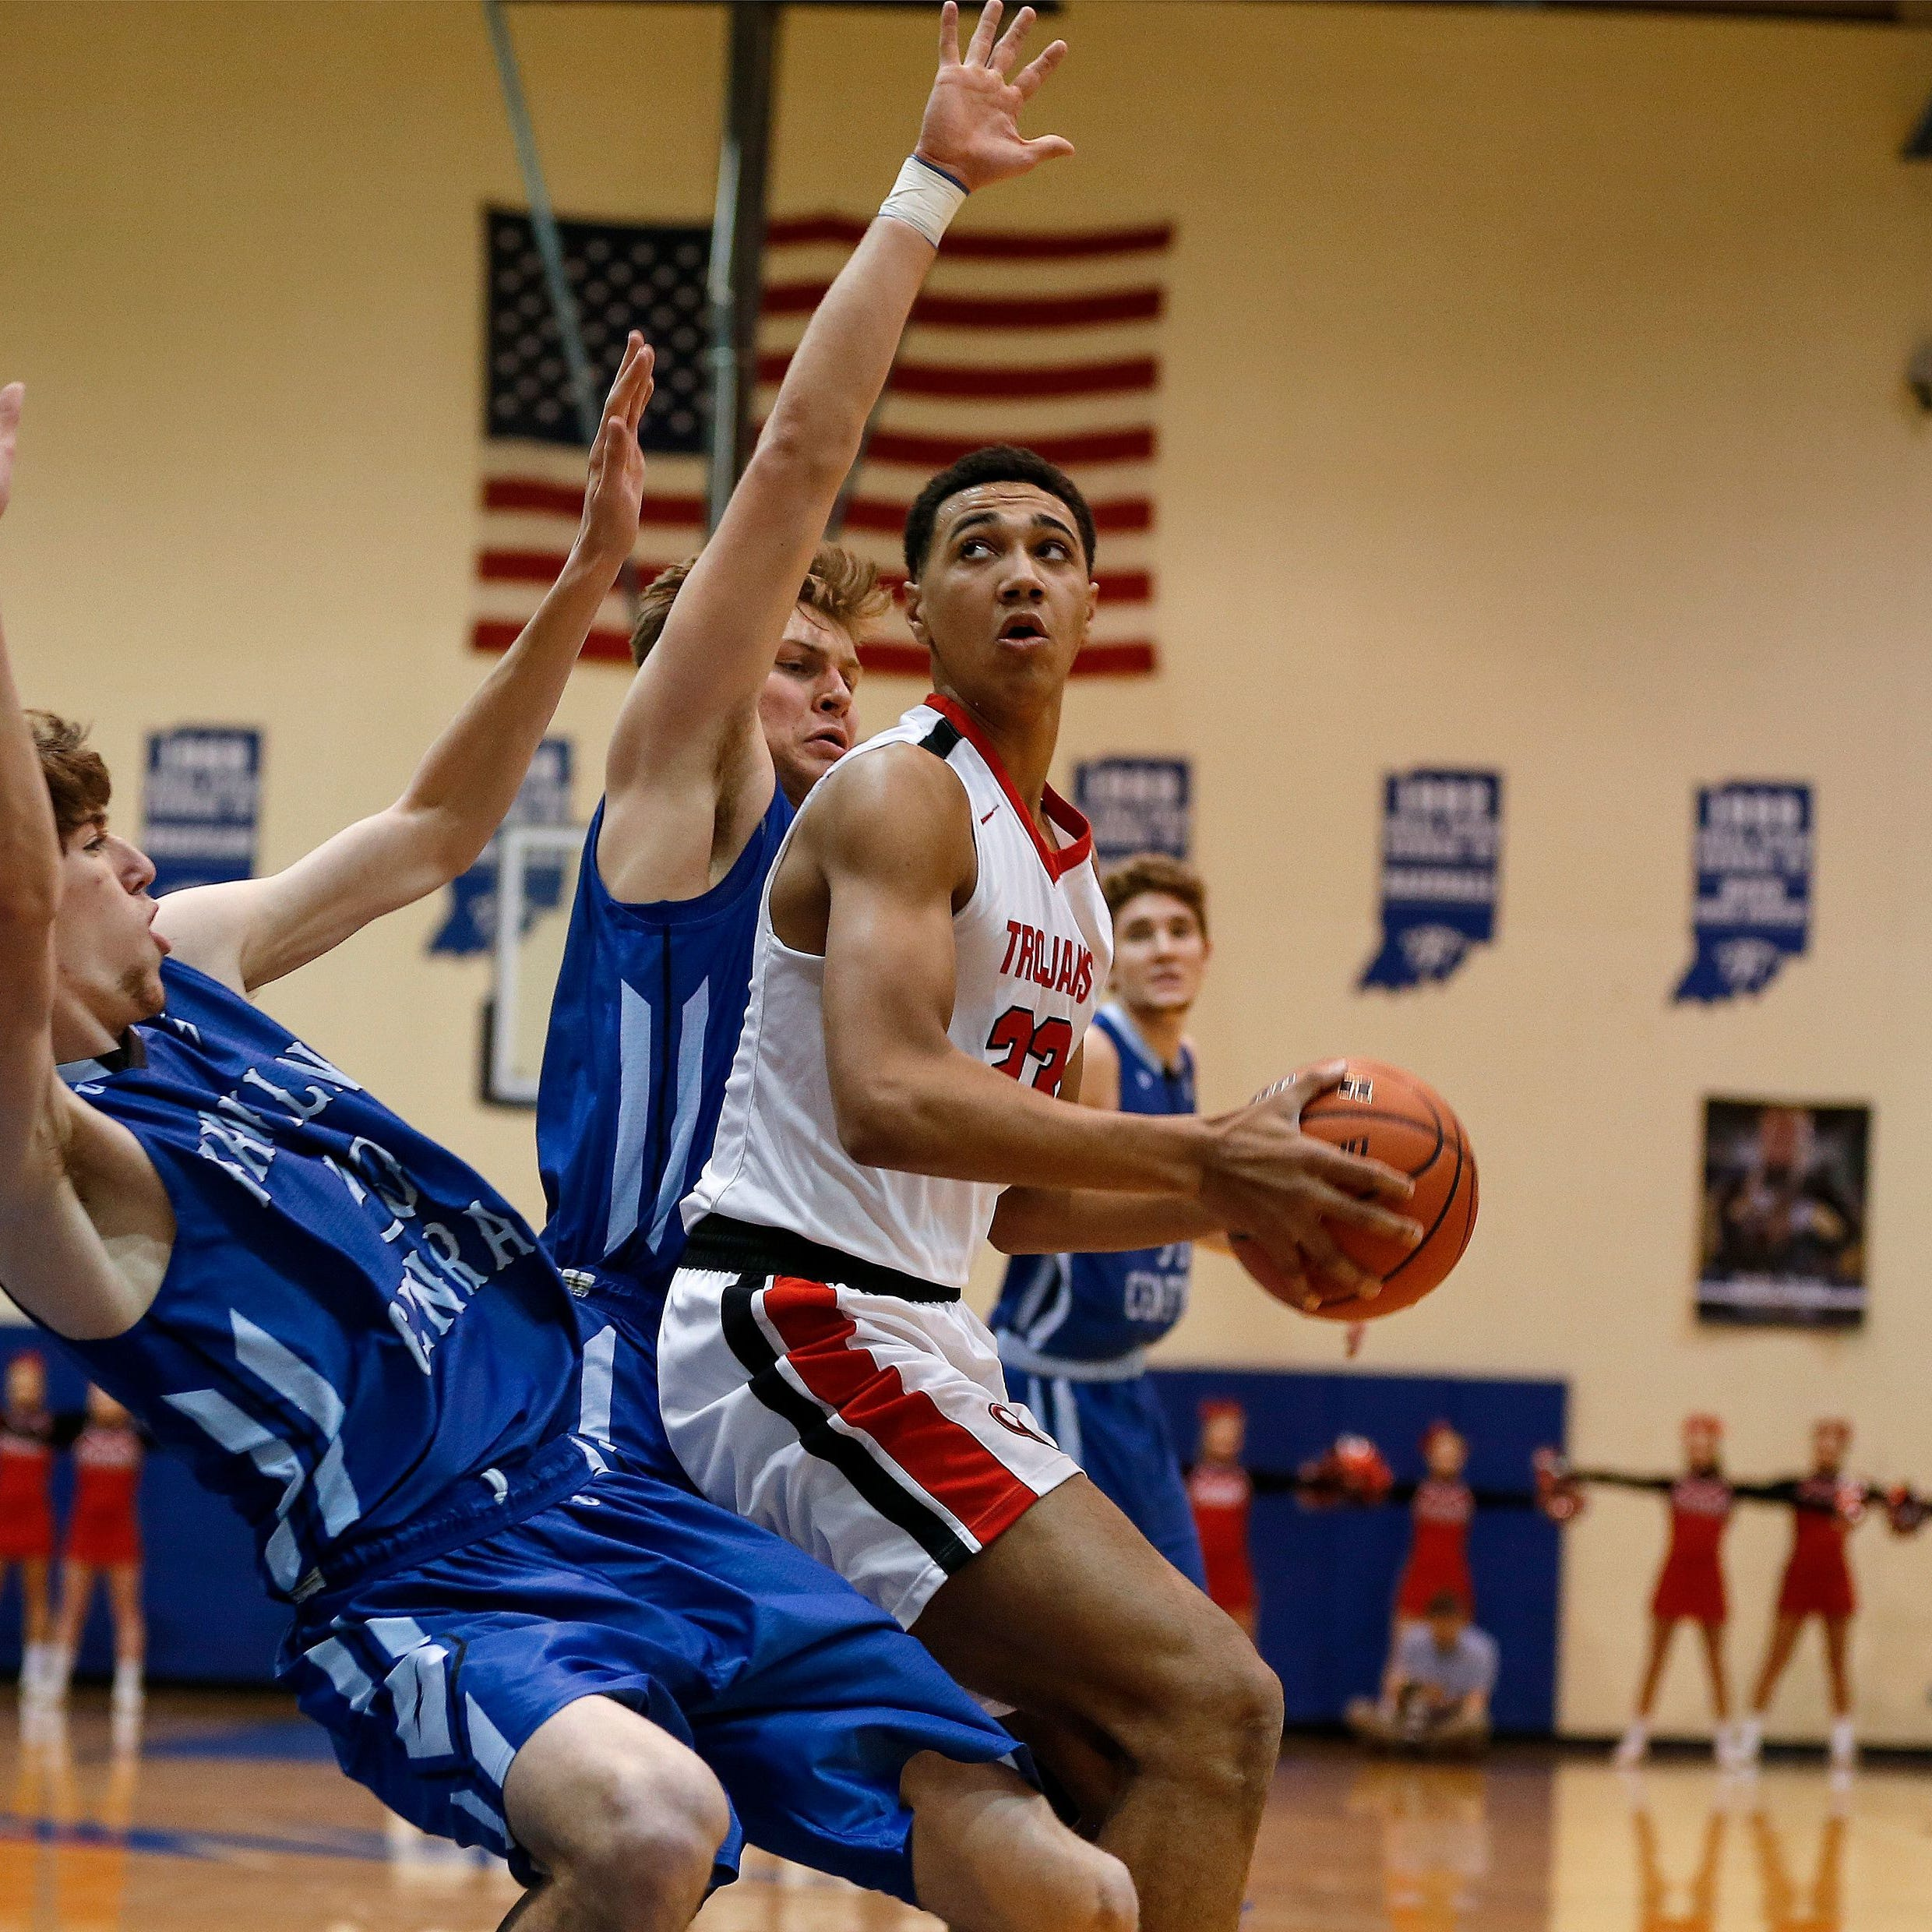 Center Grove's Trayce Jackson-Davis